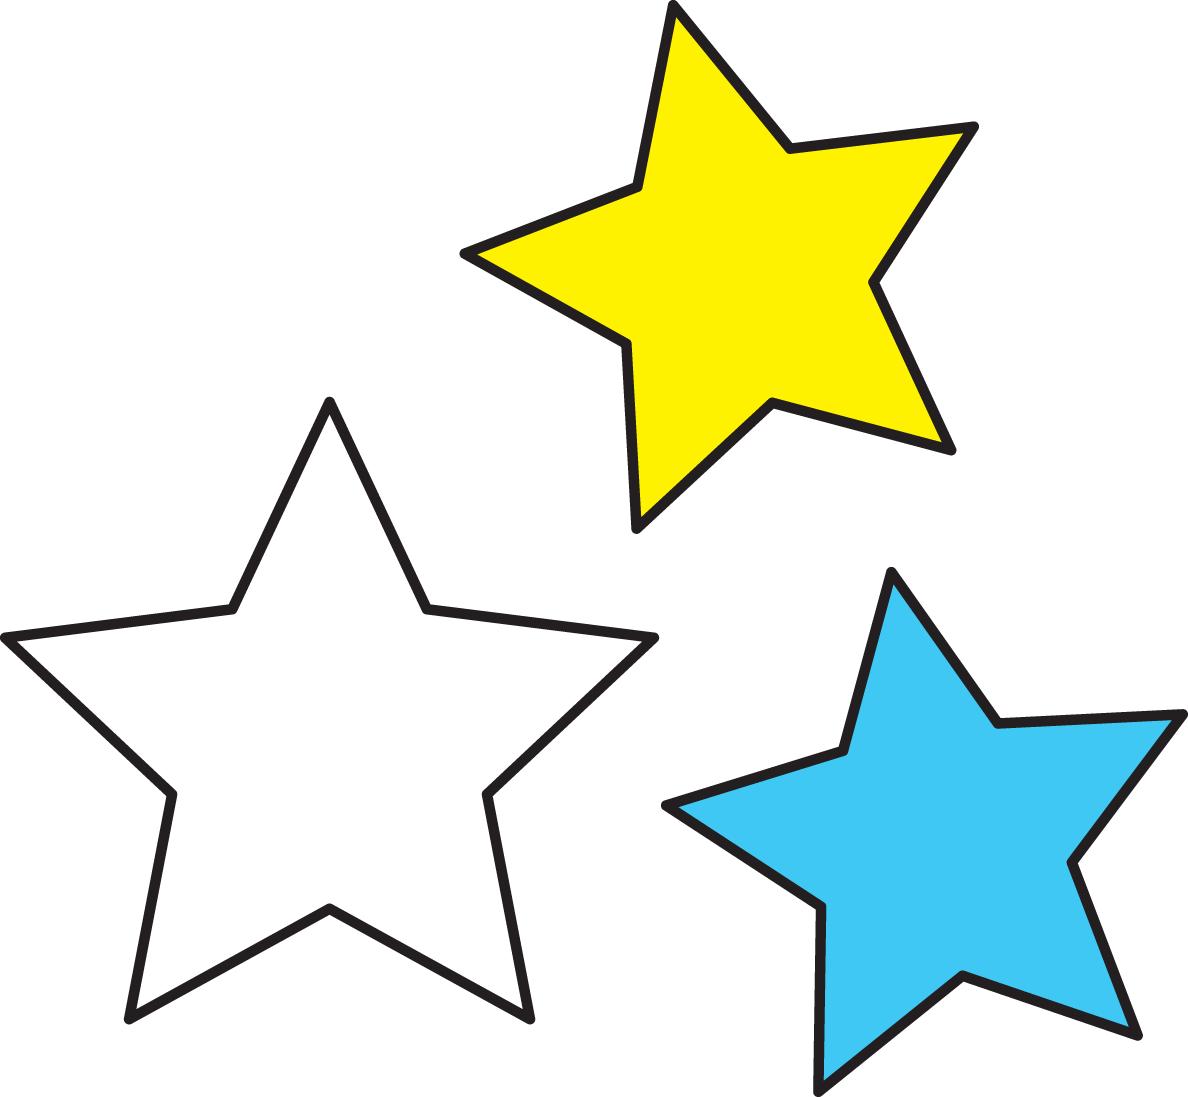 jpg free download Star clipart space